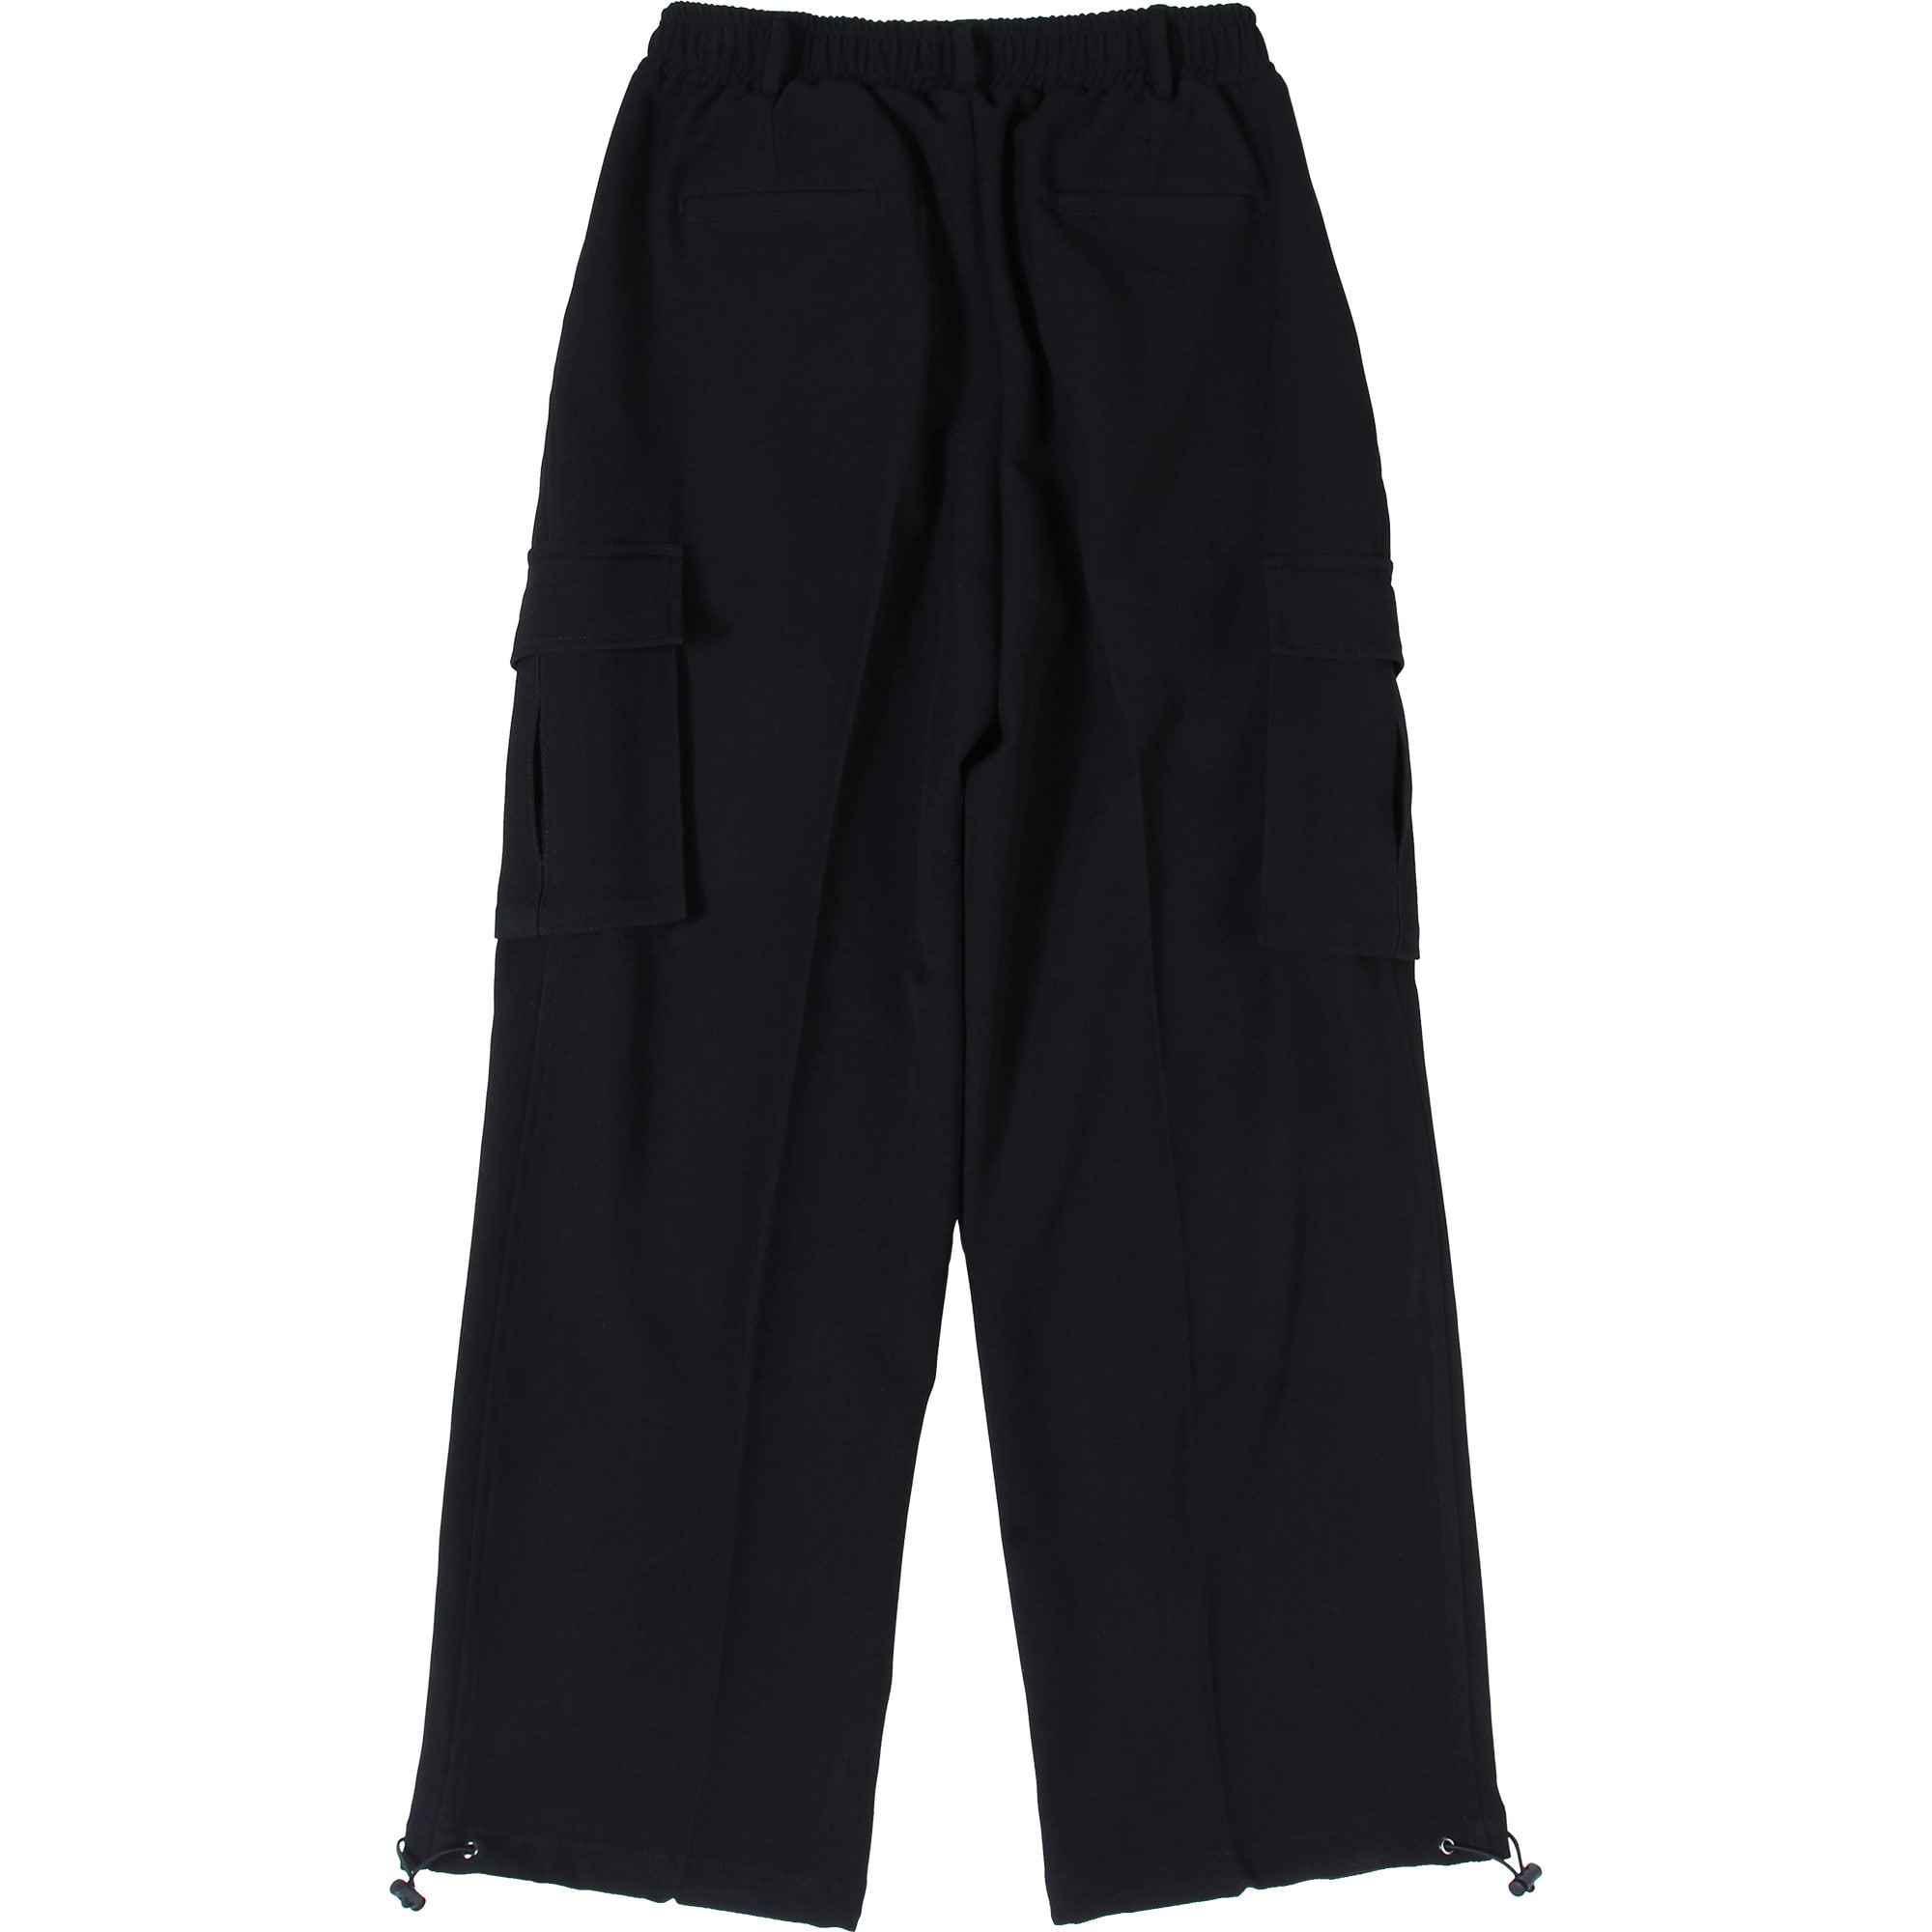 Wide String Cargo Slacks Pants [Black],NOT4NERD